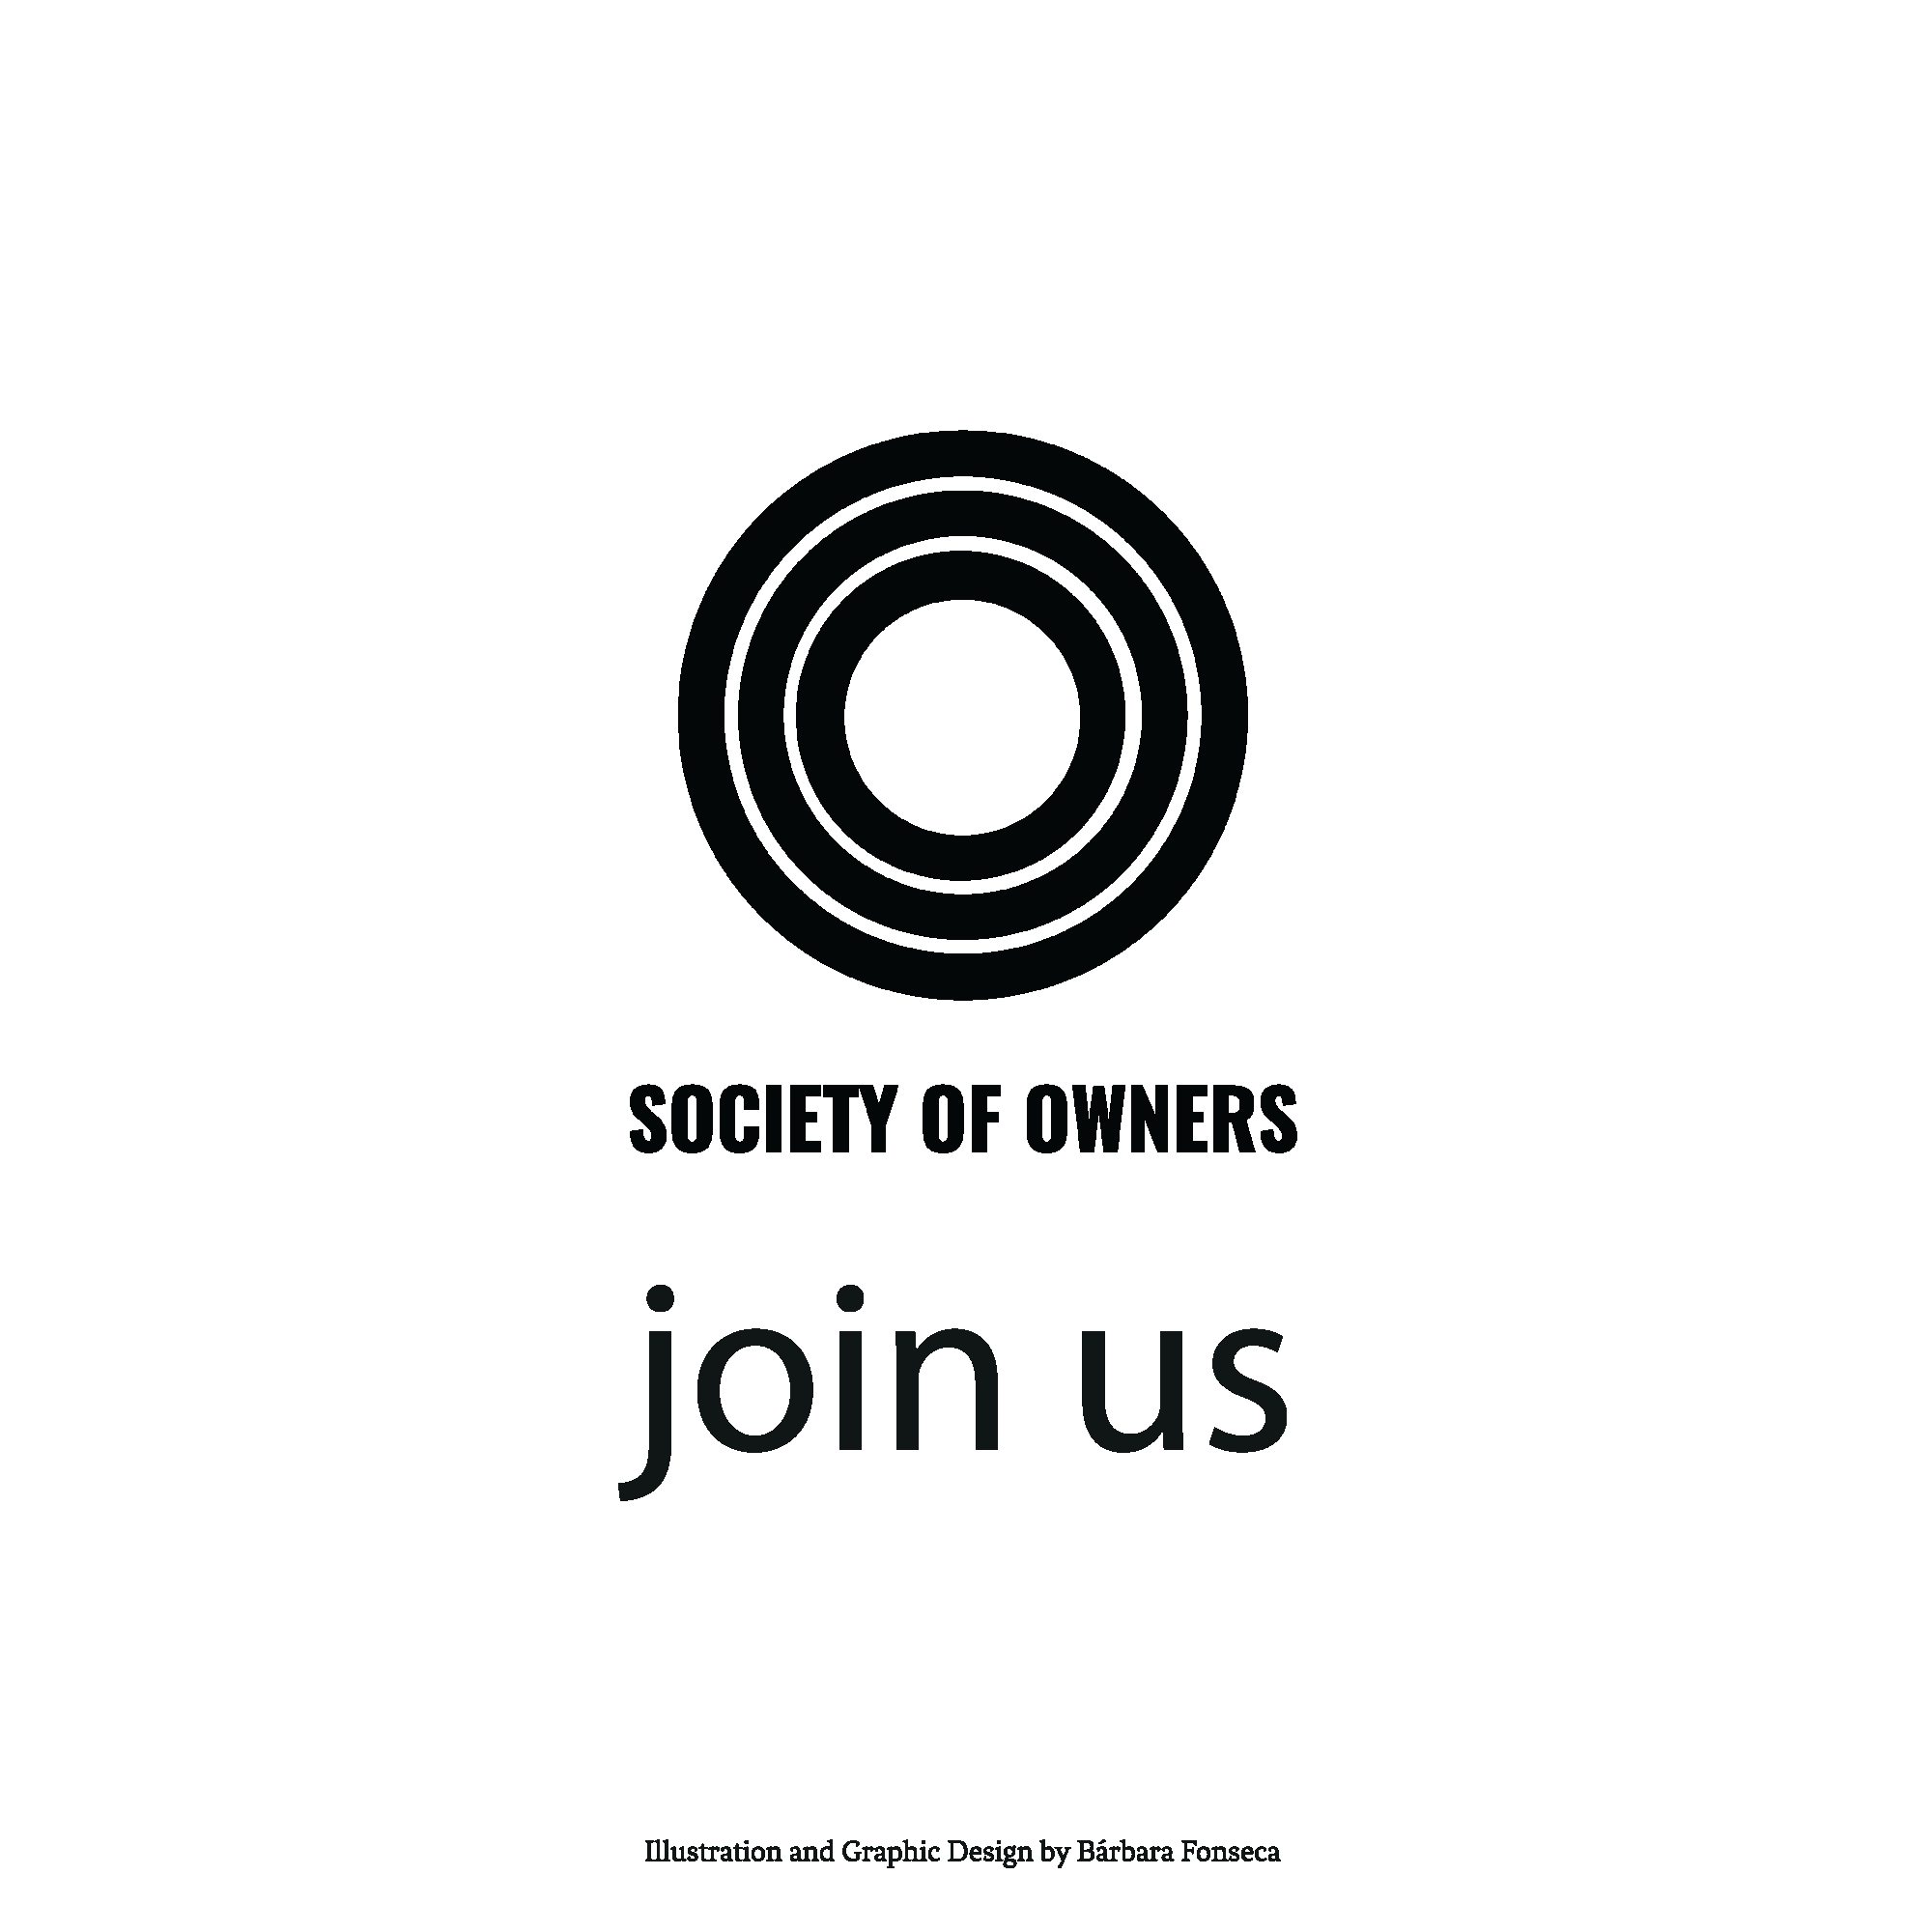 societyofowners_join-us_9